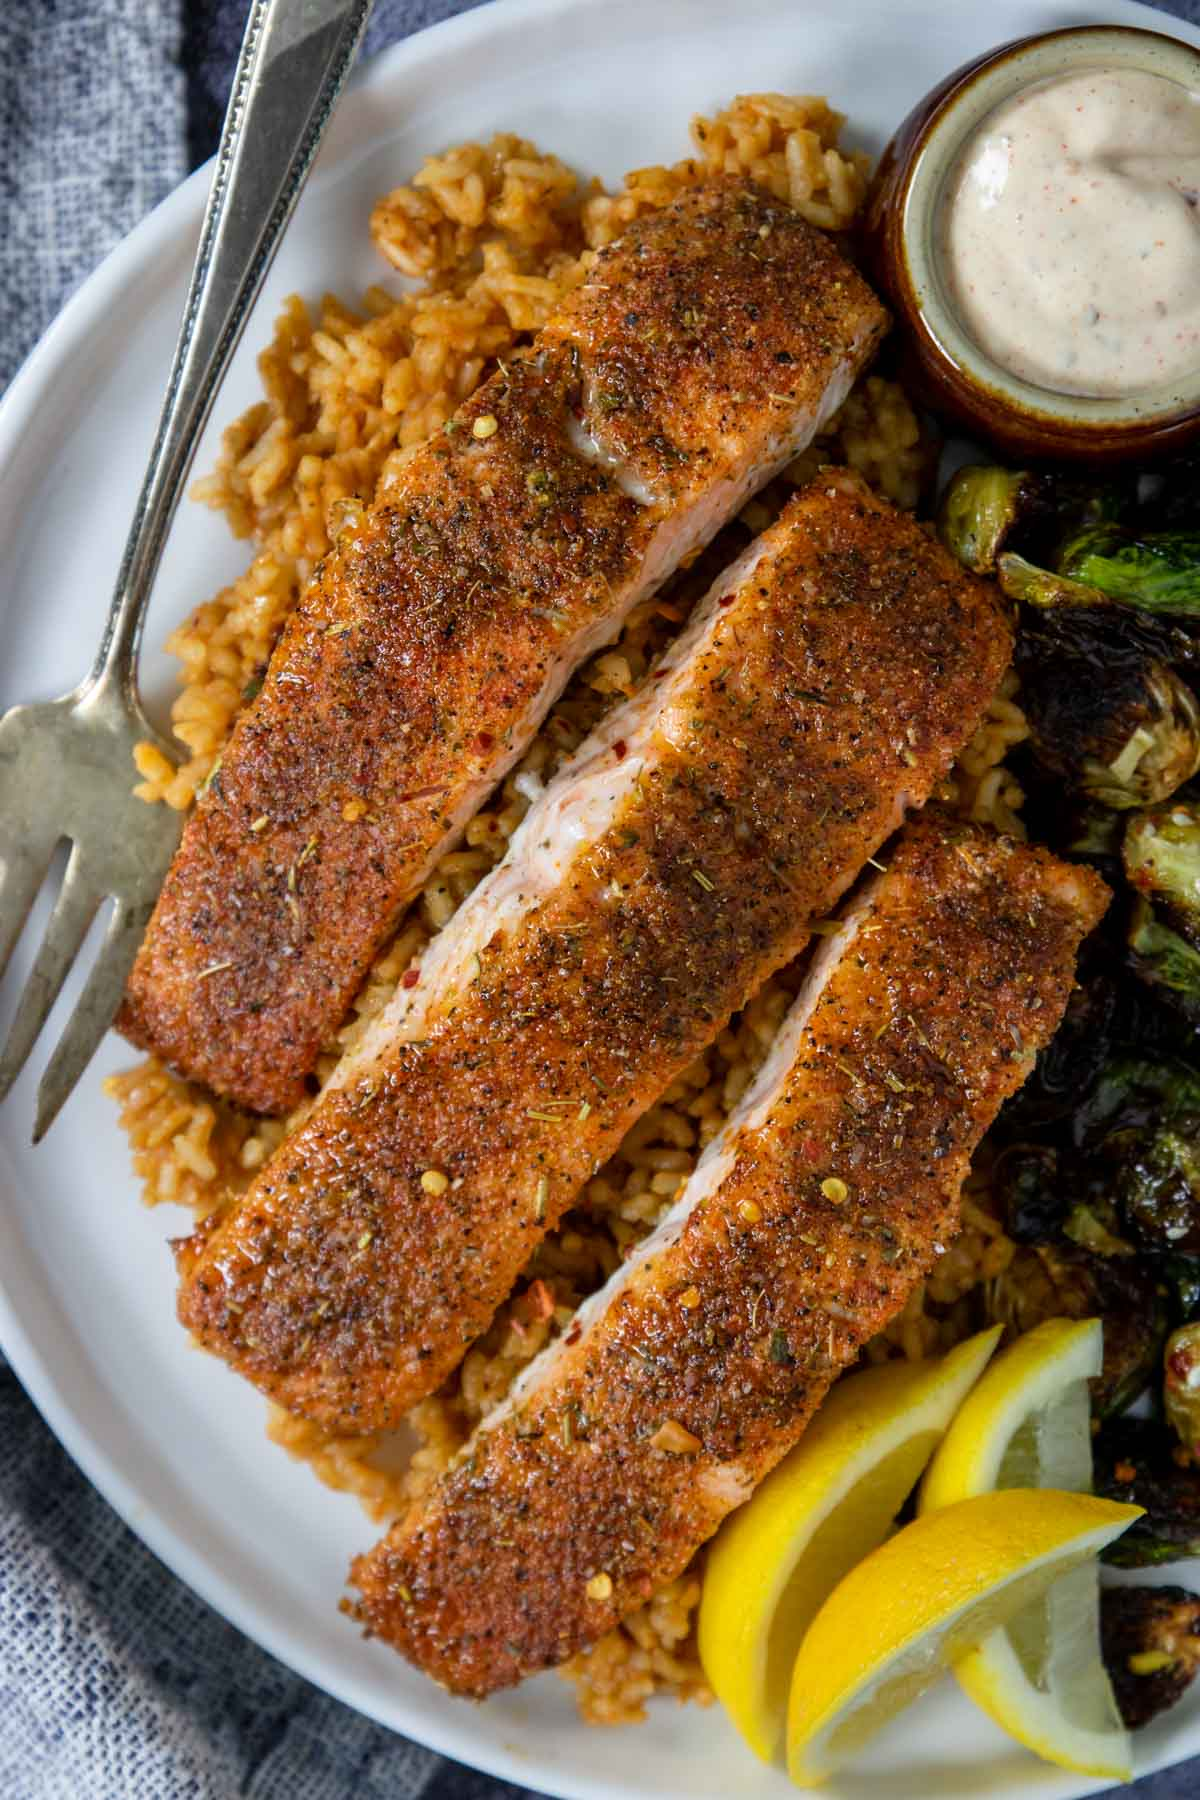 Baked Cajun salmon on a plate with rice and lemon wedges